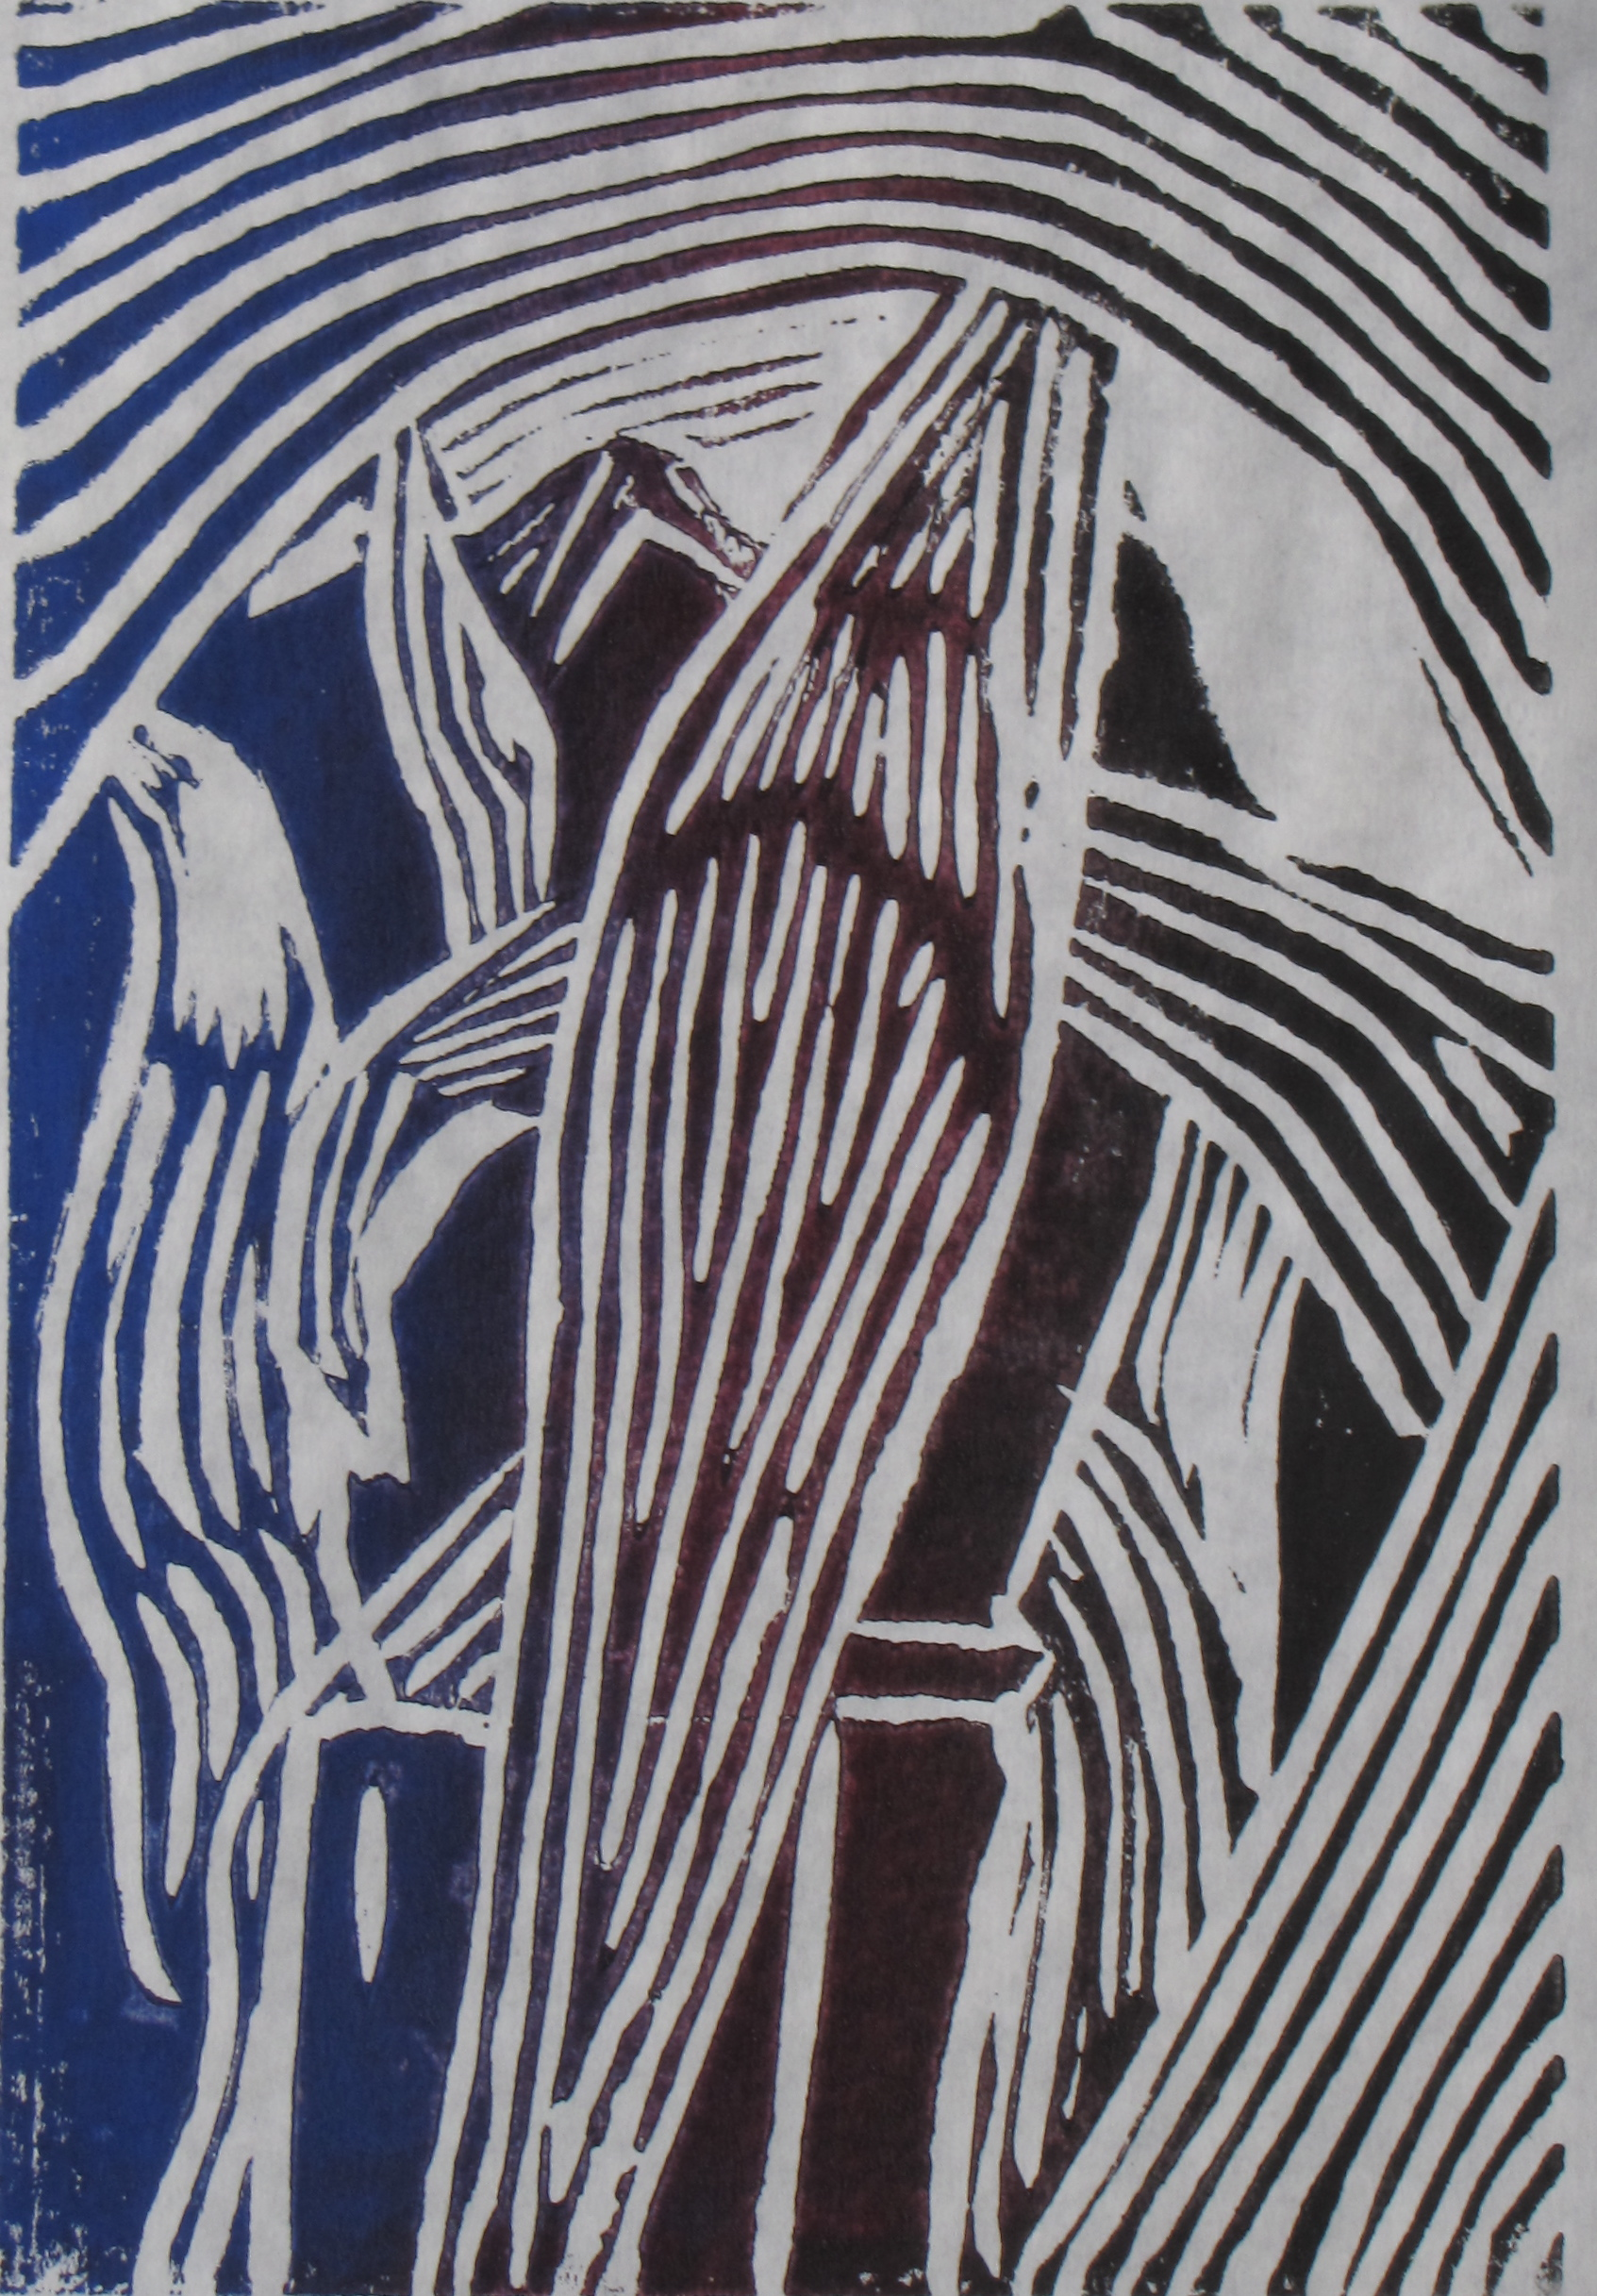 Midnight Corn, 2 of 6, Russell Steven Powell linoprint, 6x9